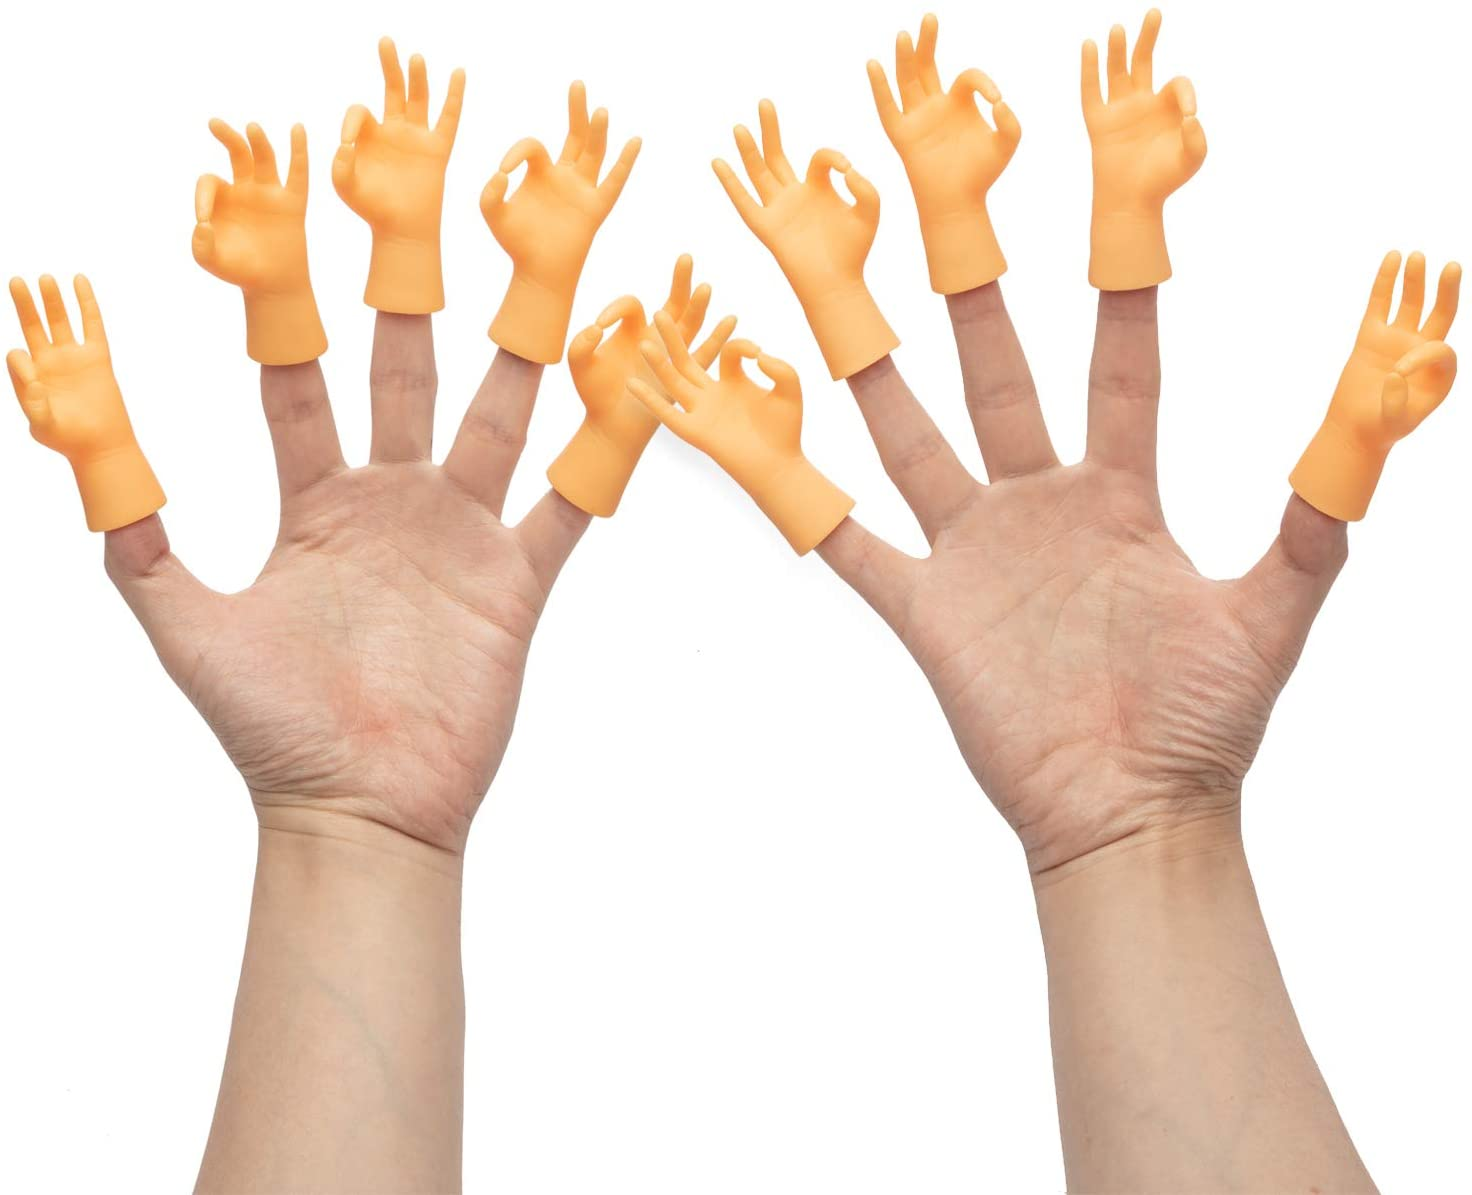 Yolococa 10 Pieces Finger Puppet Mini Finger Hands Tiny Hands with Left Hands and Right Hands for Game Party,Gesture Ok